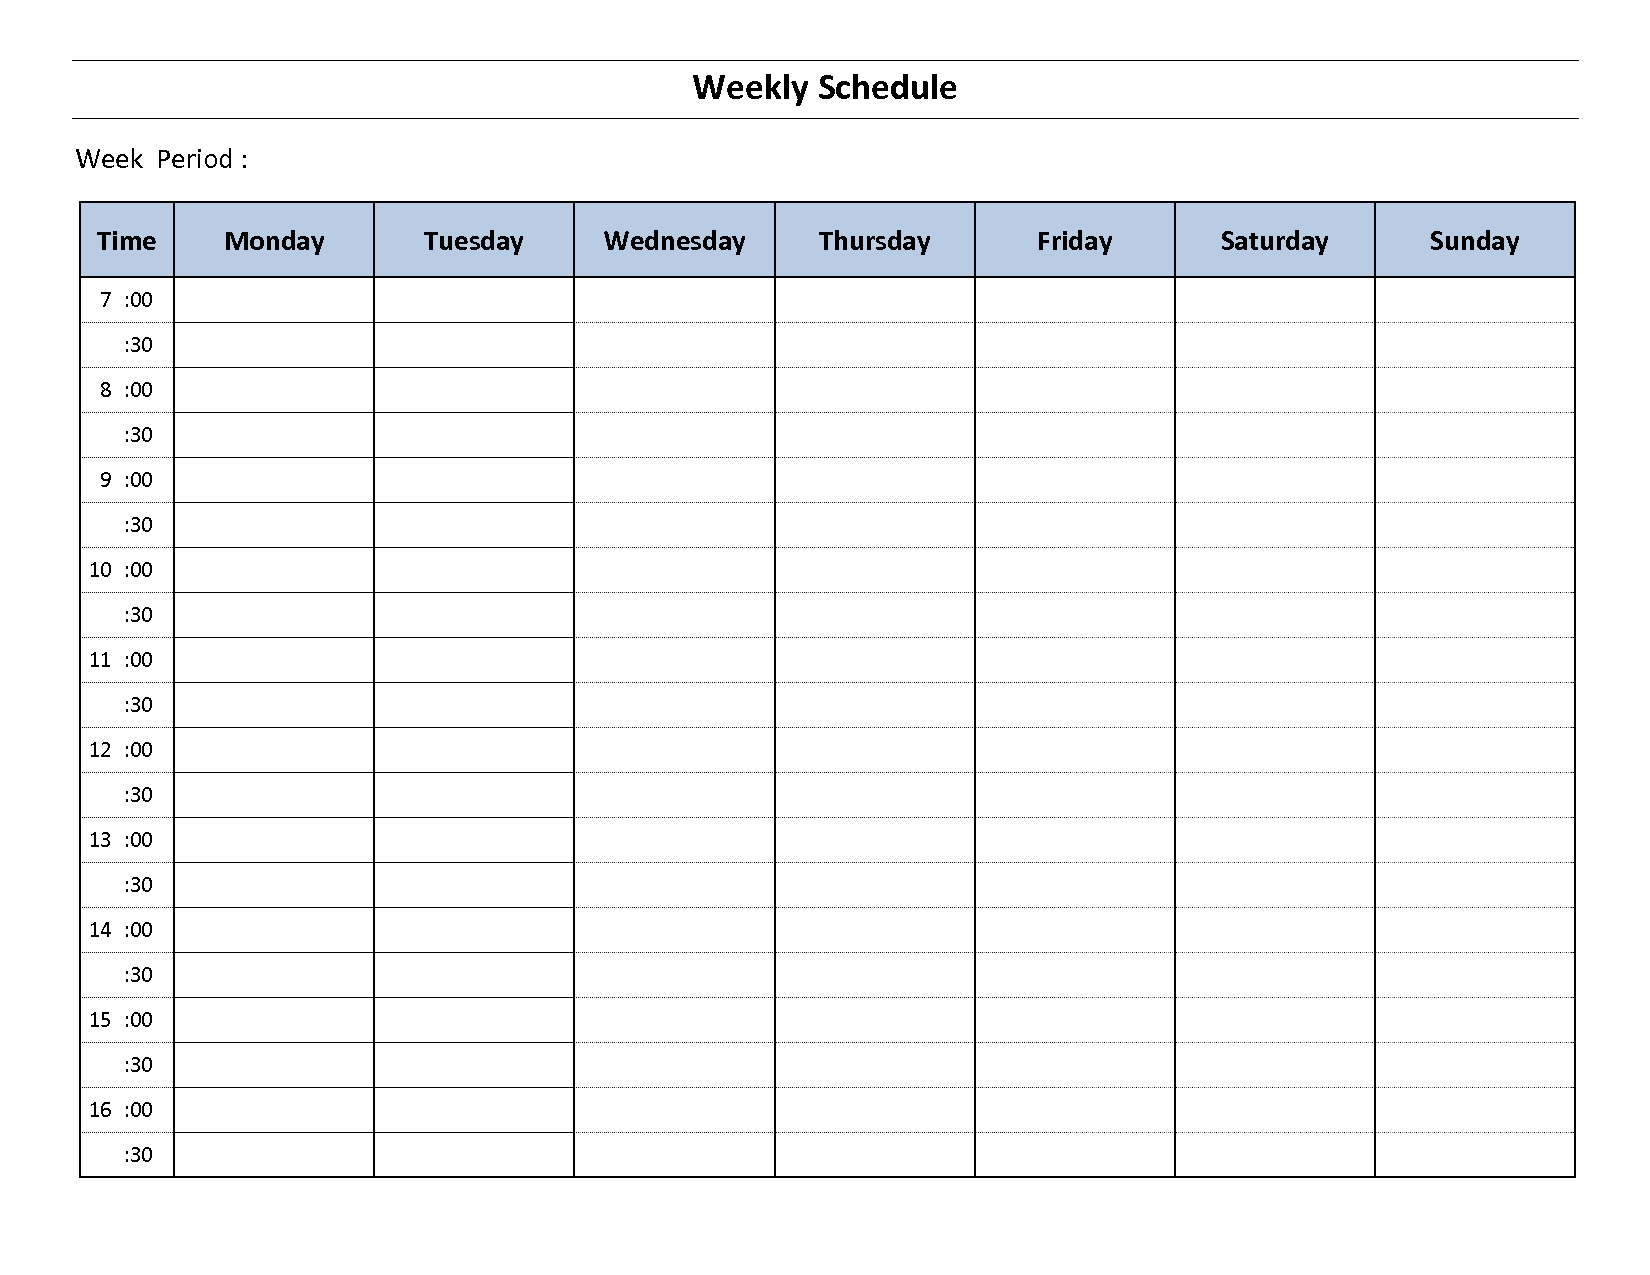 Weekly Schedule Template | Aplg-Planetariums  Weekly Schedule Monday - Sunday